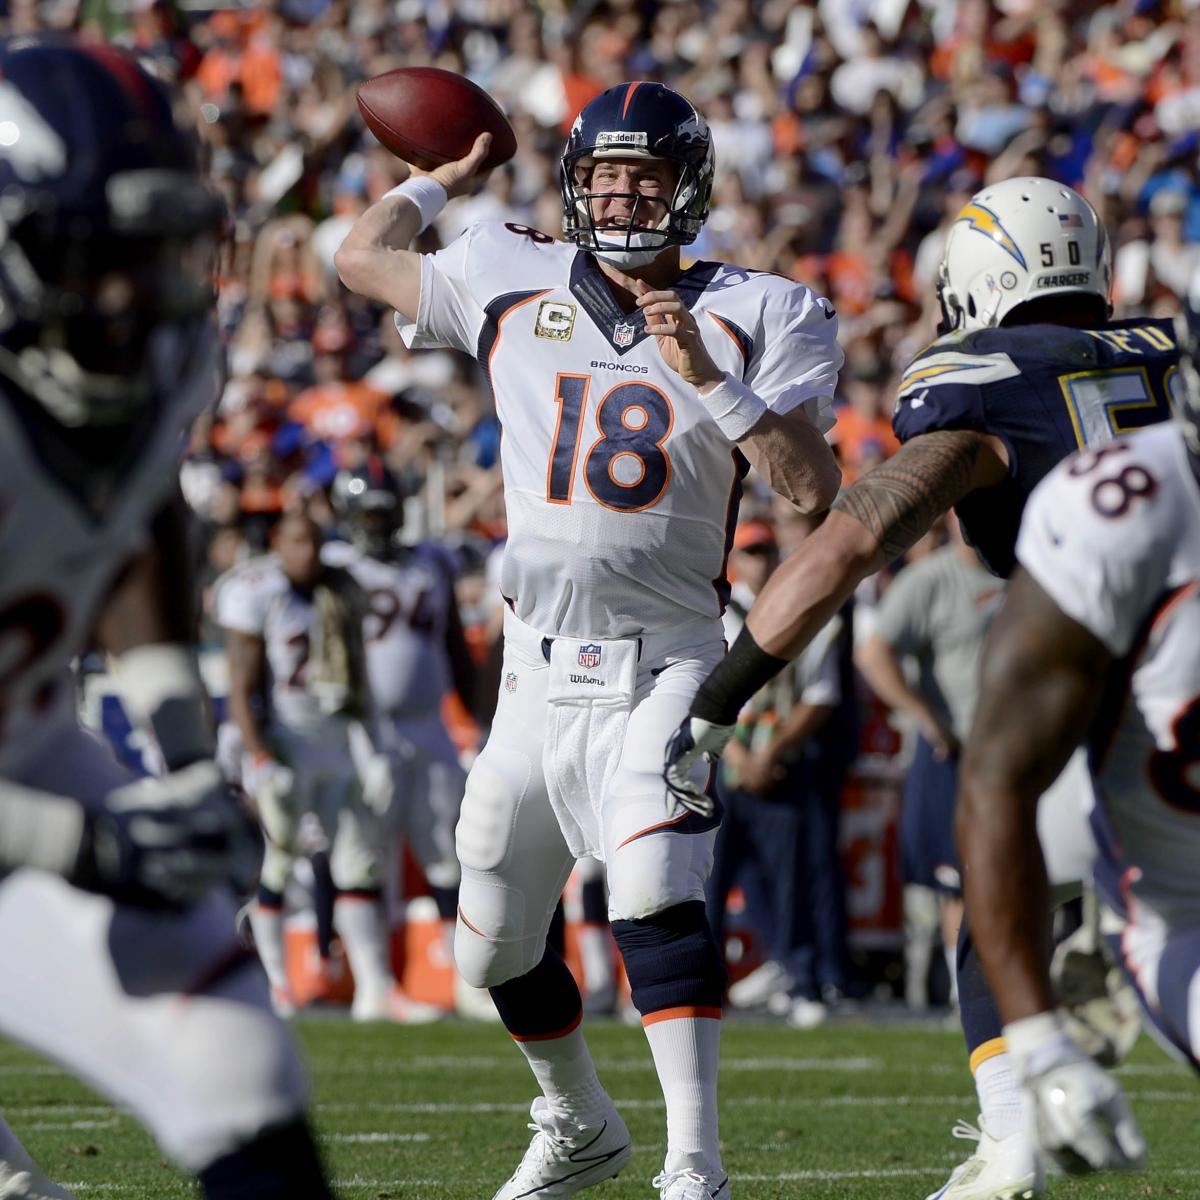 The Latest Denver Broncos News Bleacher Report: 5 Critical Takeaways From The Denver Broncos' Week 10 Win